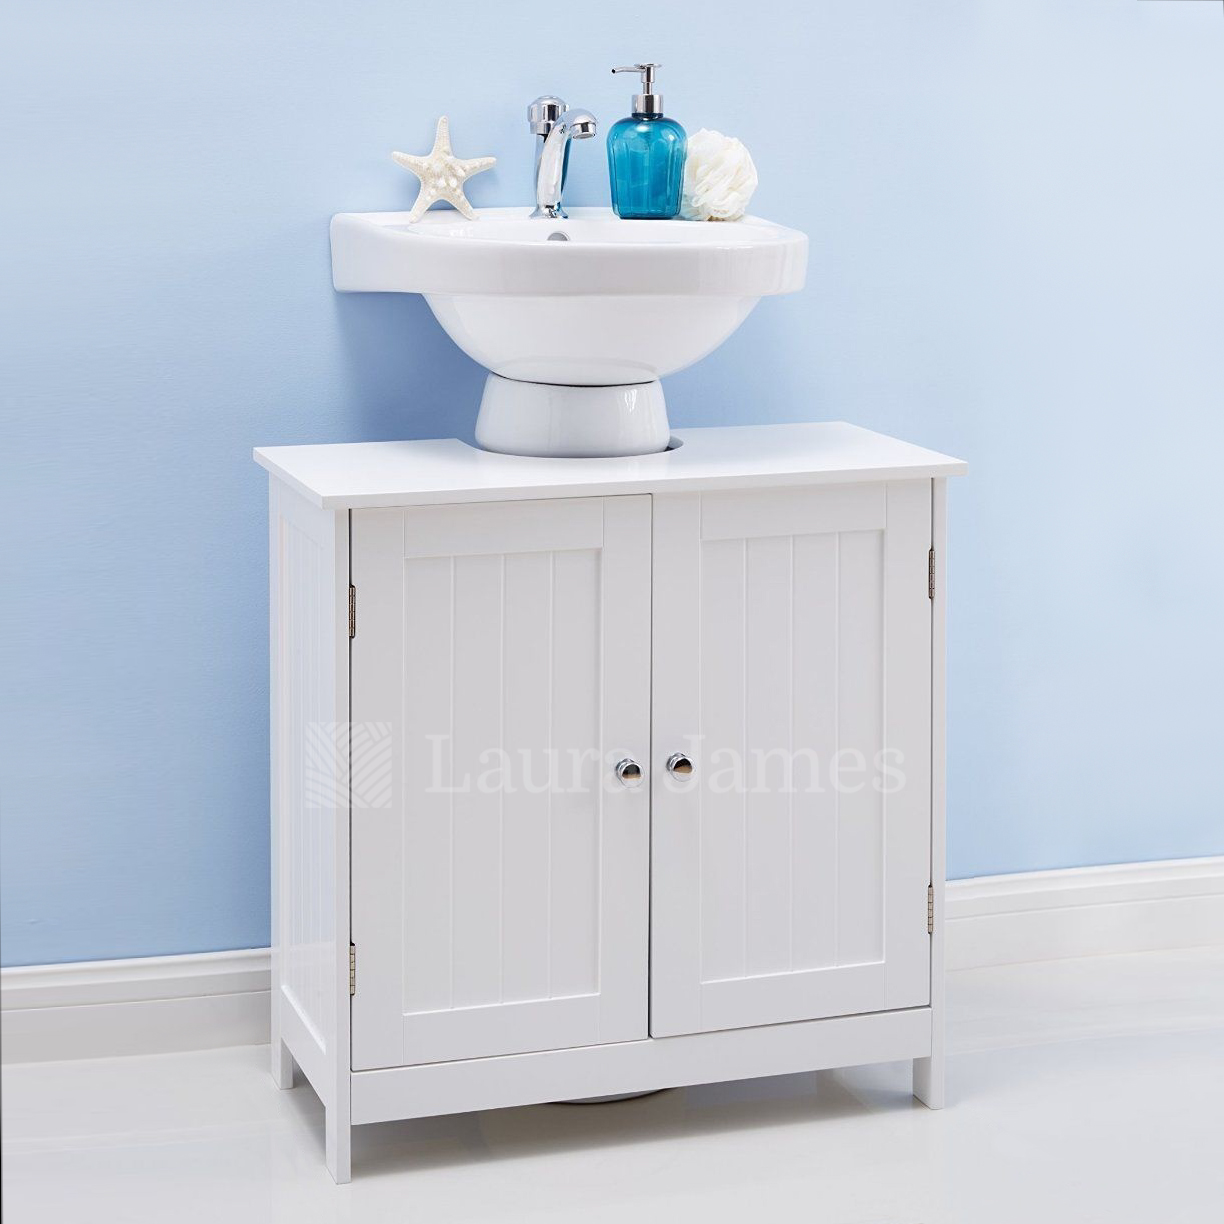 details about under sink bathroom cabinet storage unit cupboard white